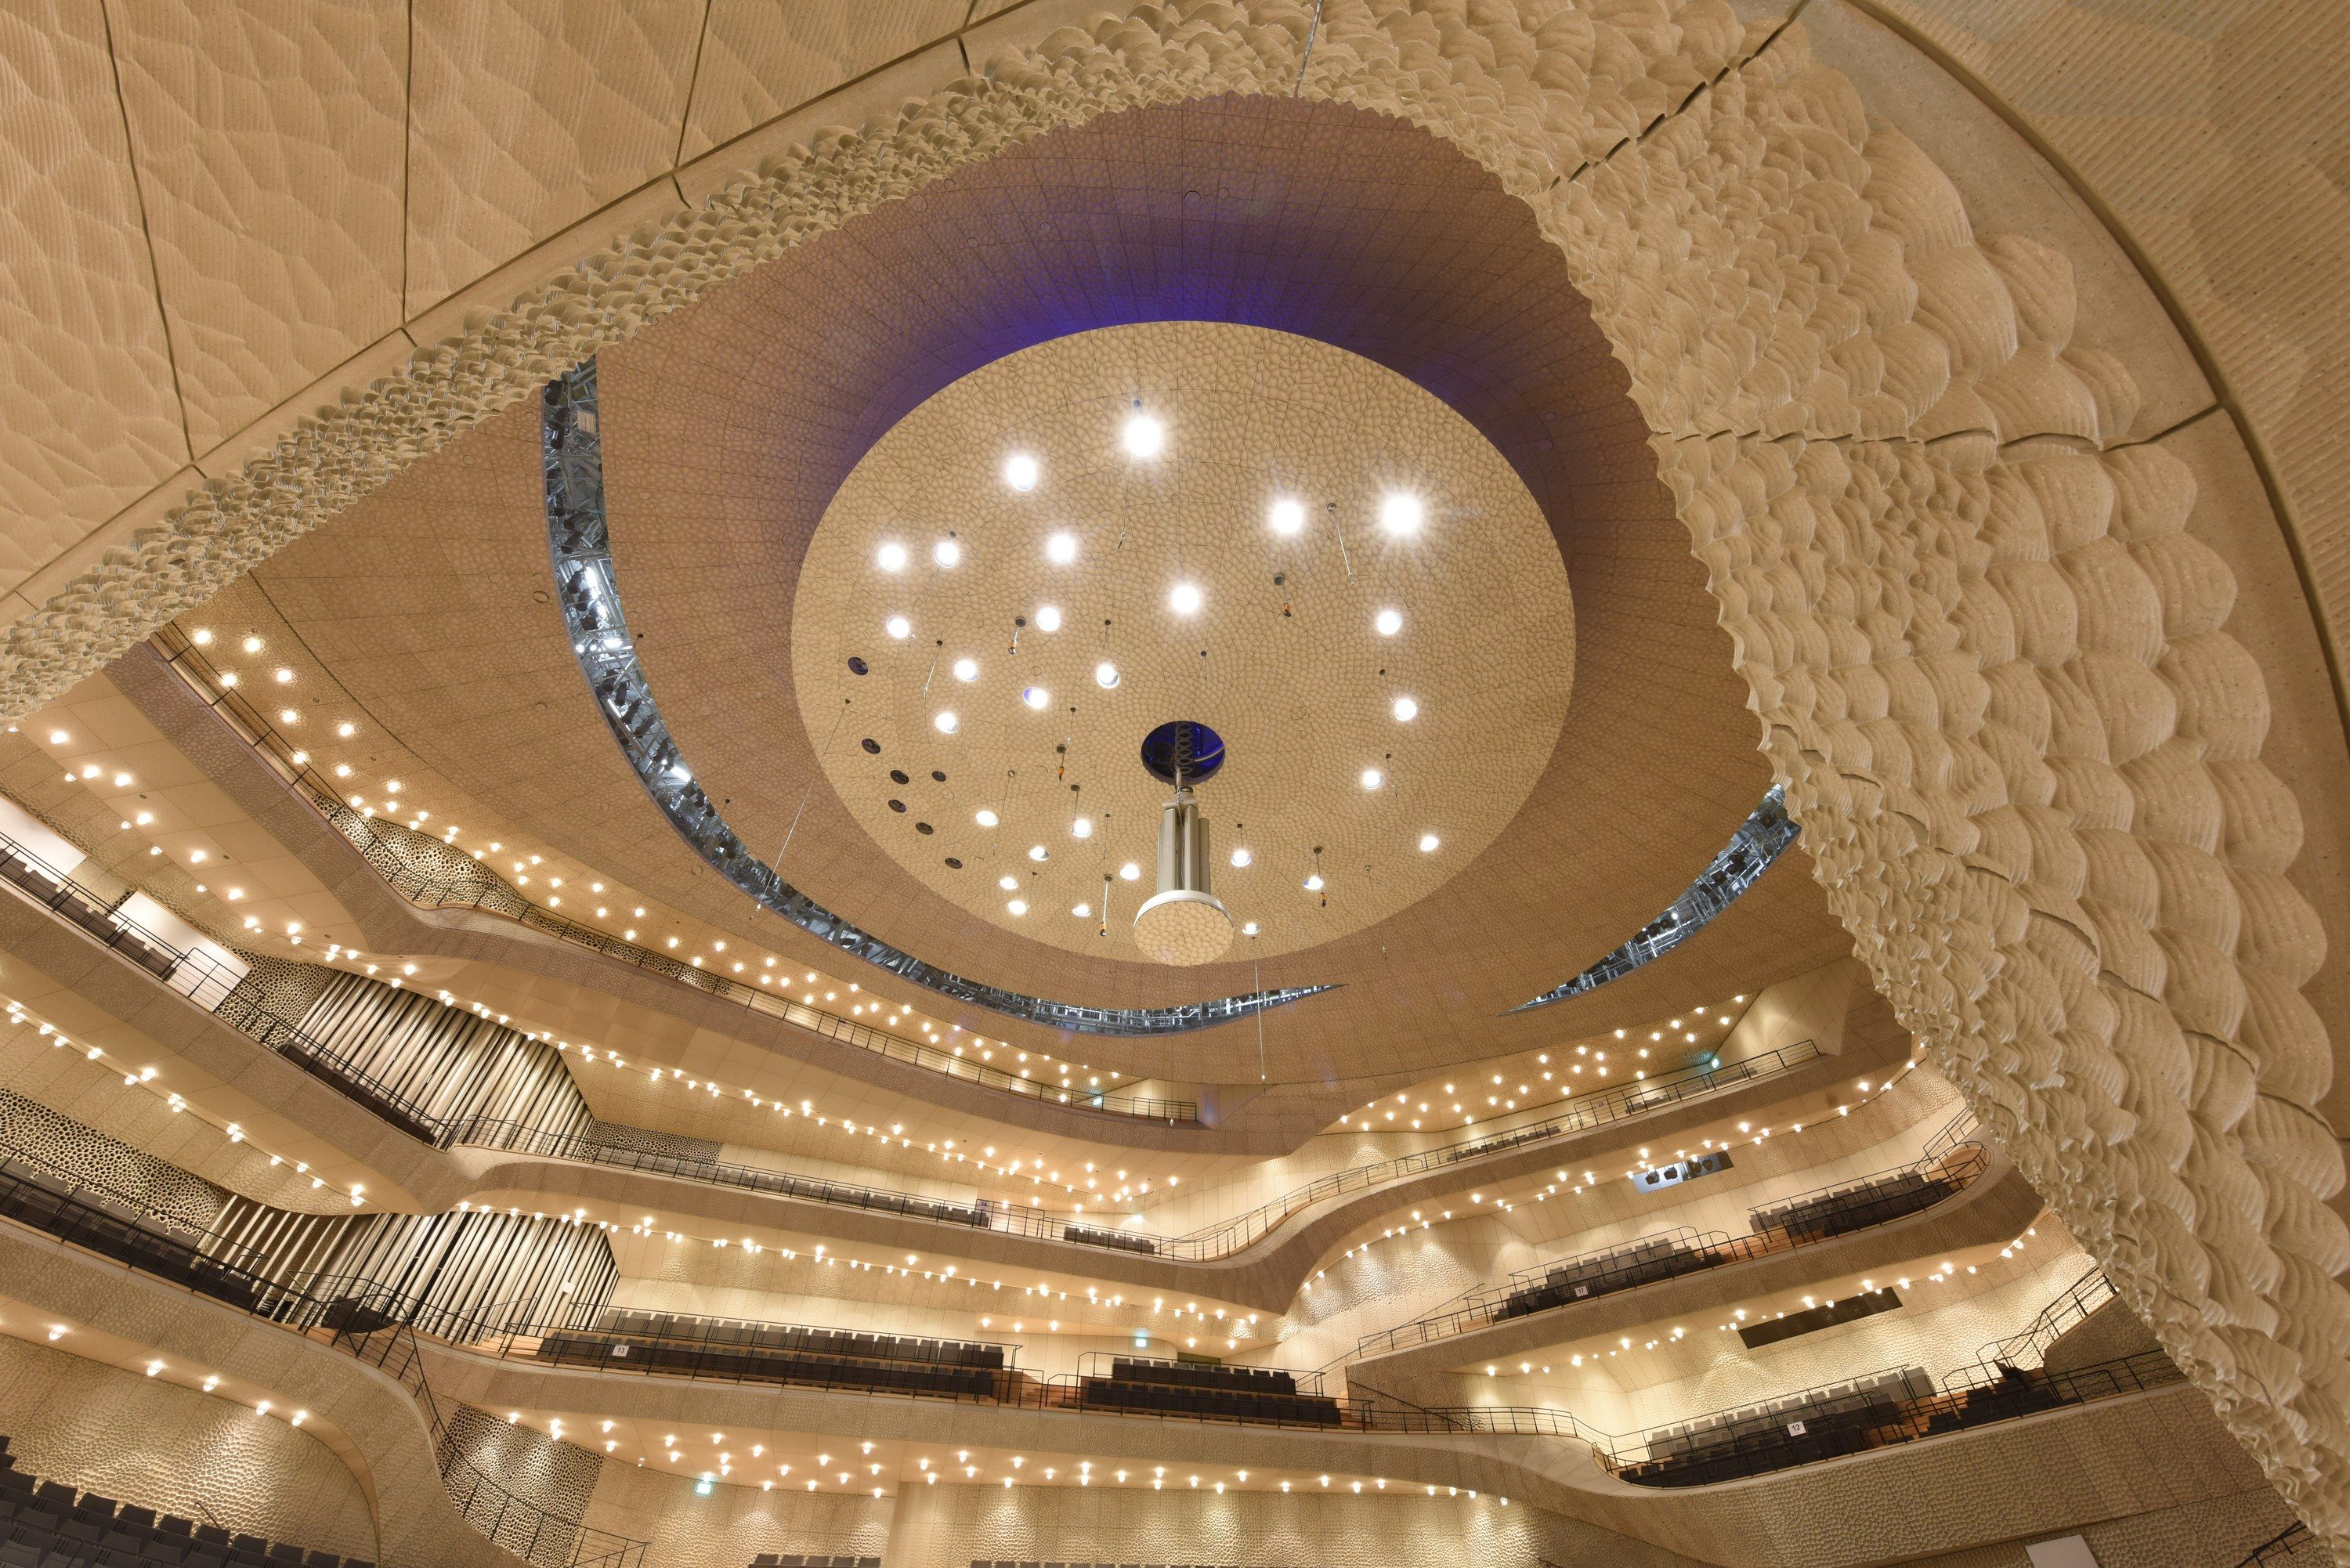 Herzog And De Meuron 39 S New Philharmonic In Hamburg Germany Is An Impressive Feat Of Technology Algorithm Design Concert Hall Light Architecture